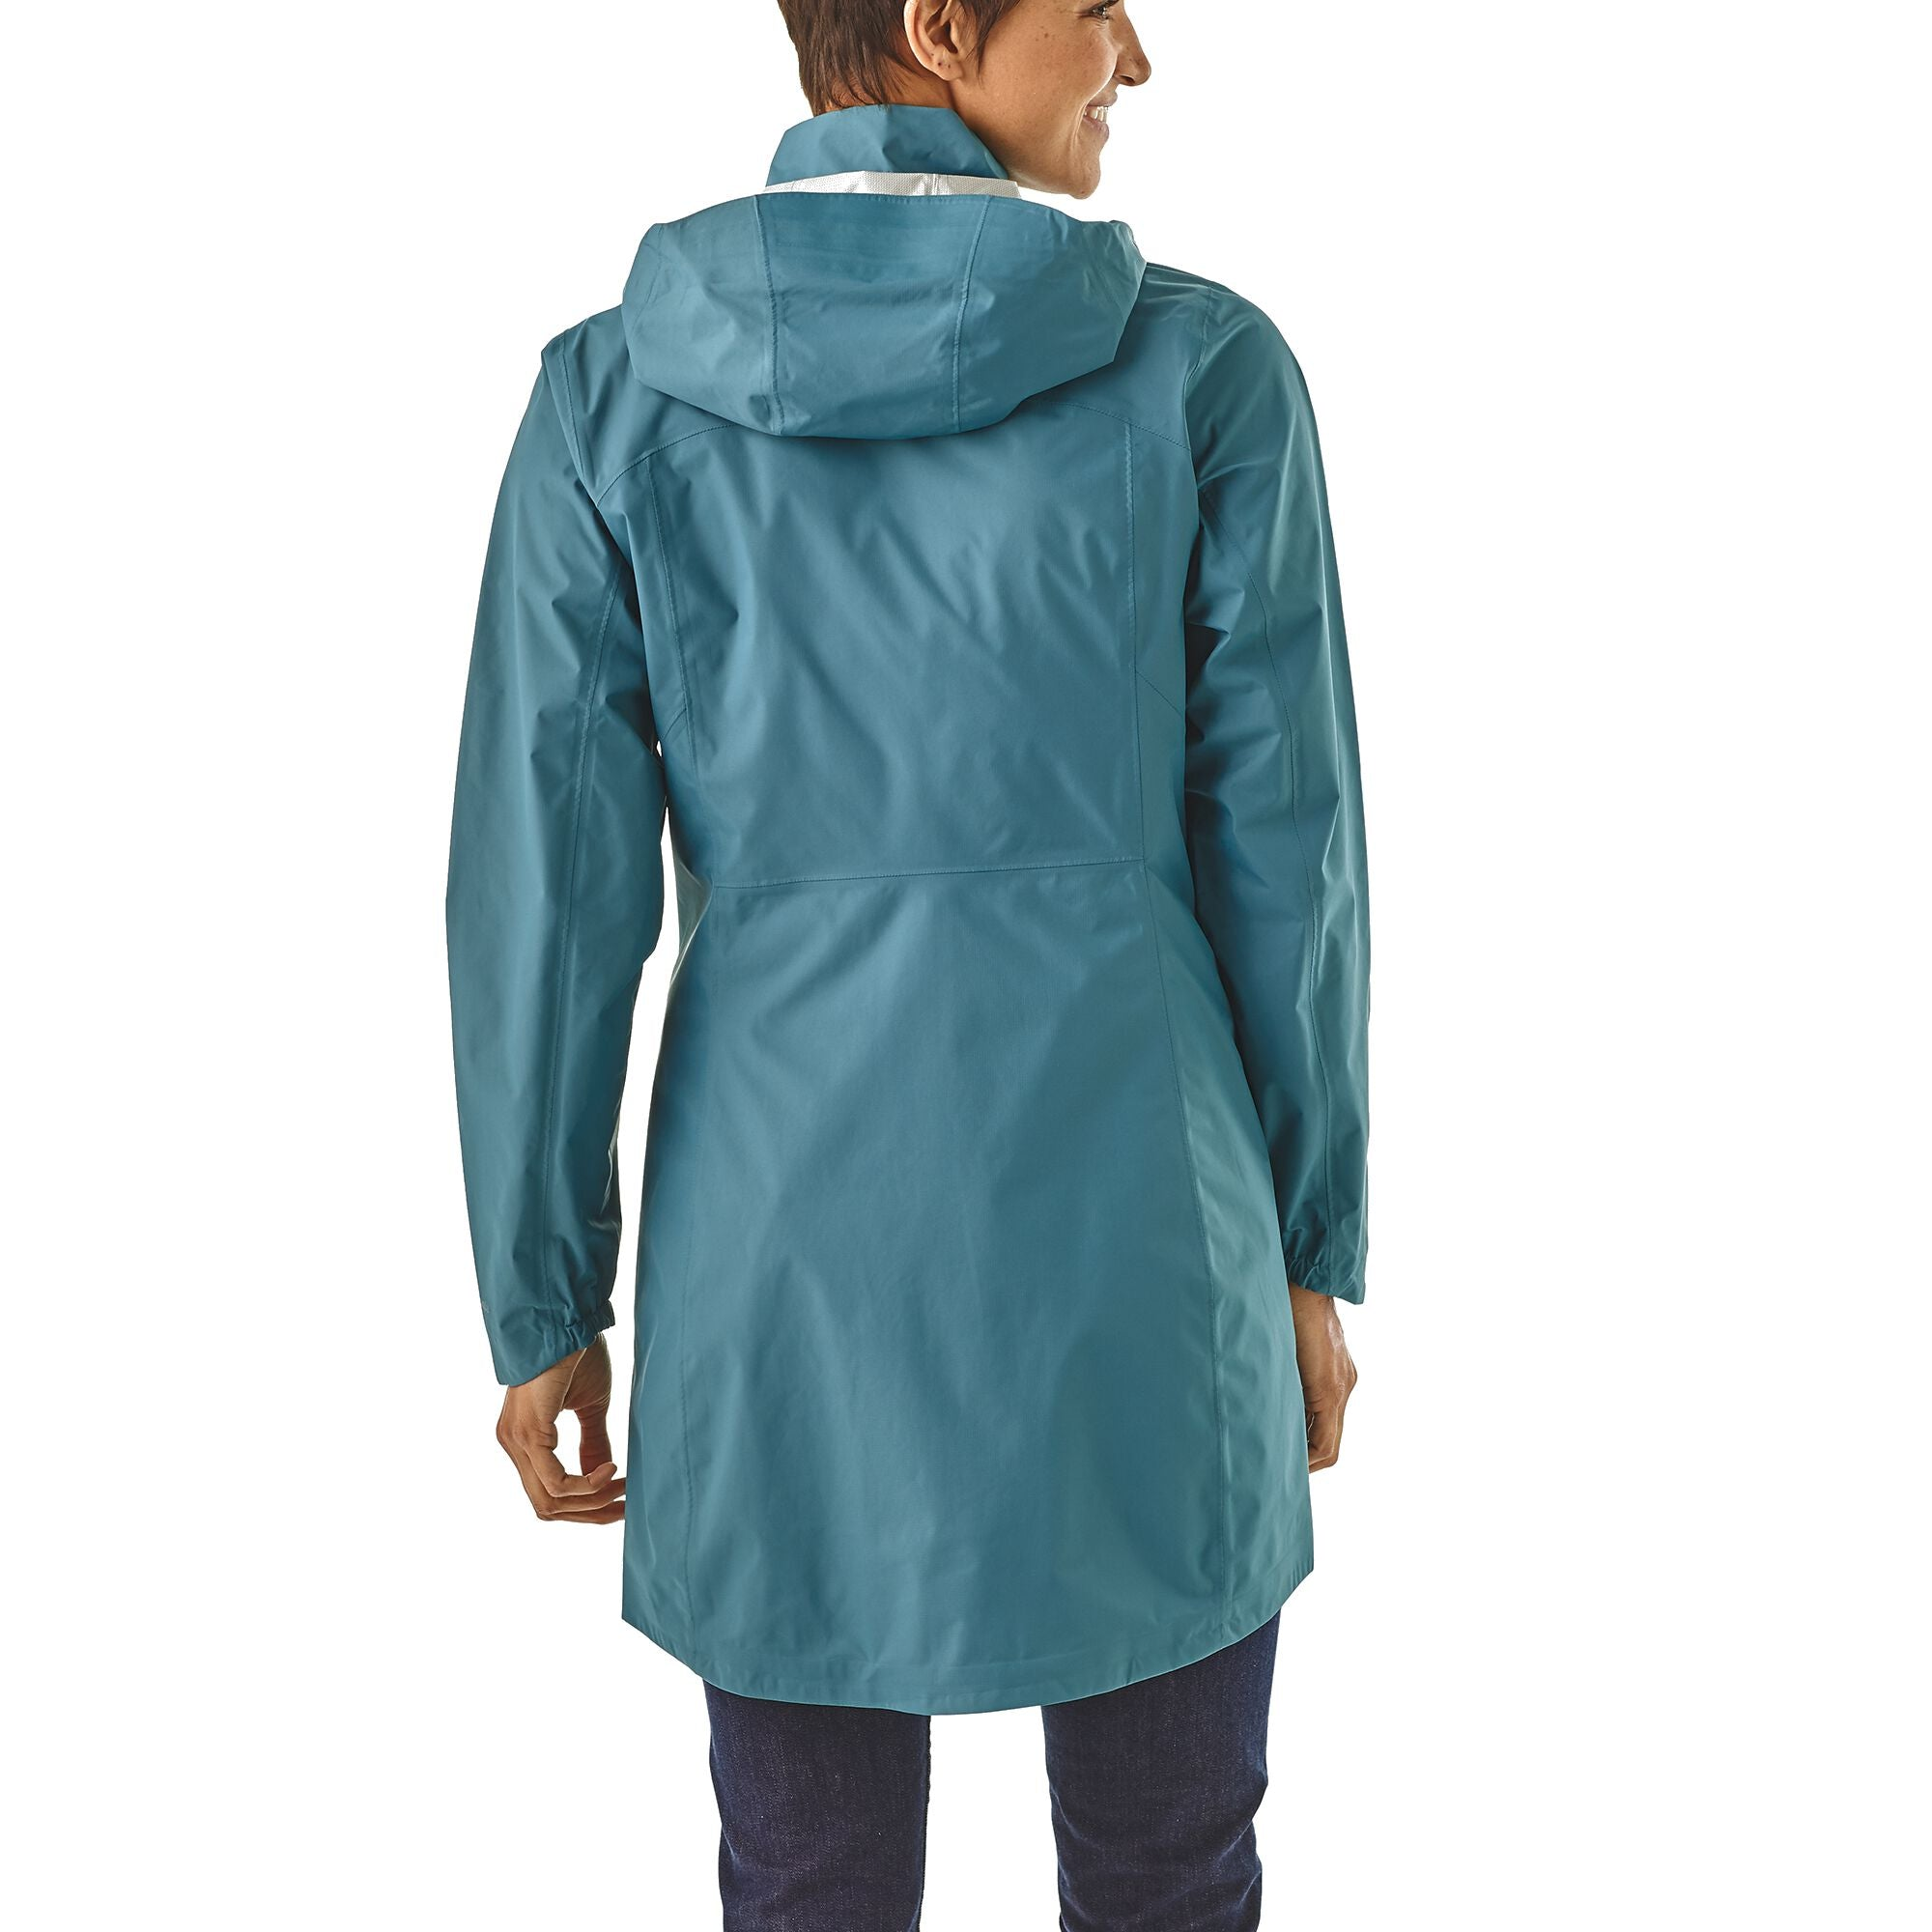 Chaqueta Mujer Torrentshell City Coat Azul Patagonia